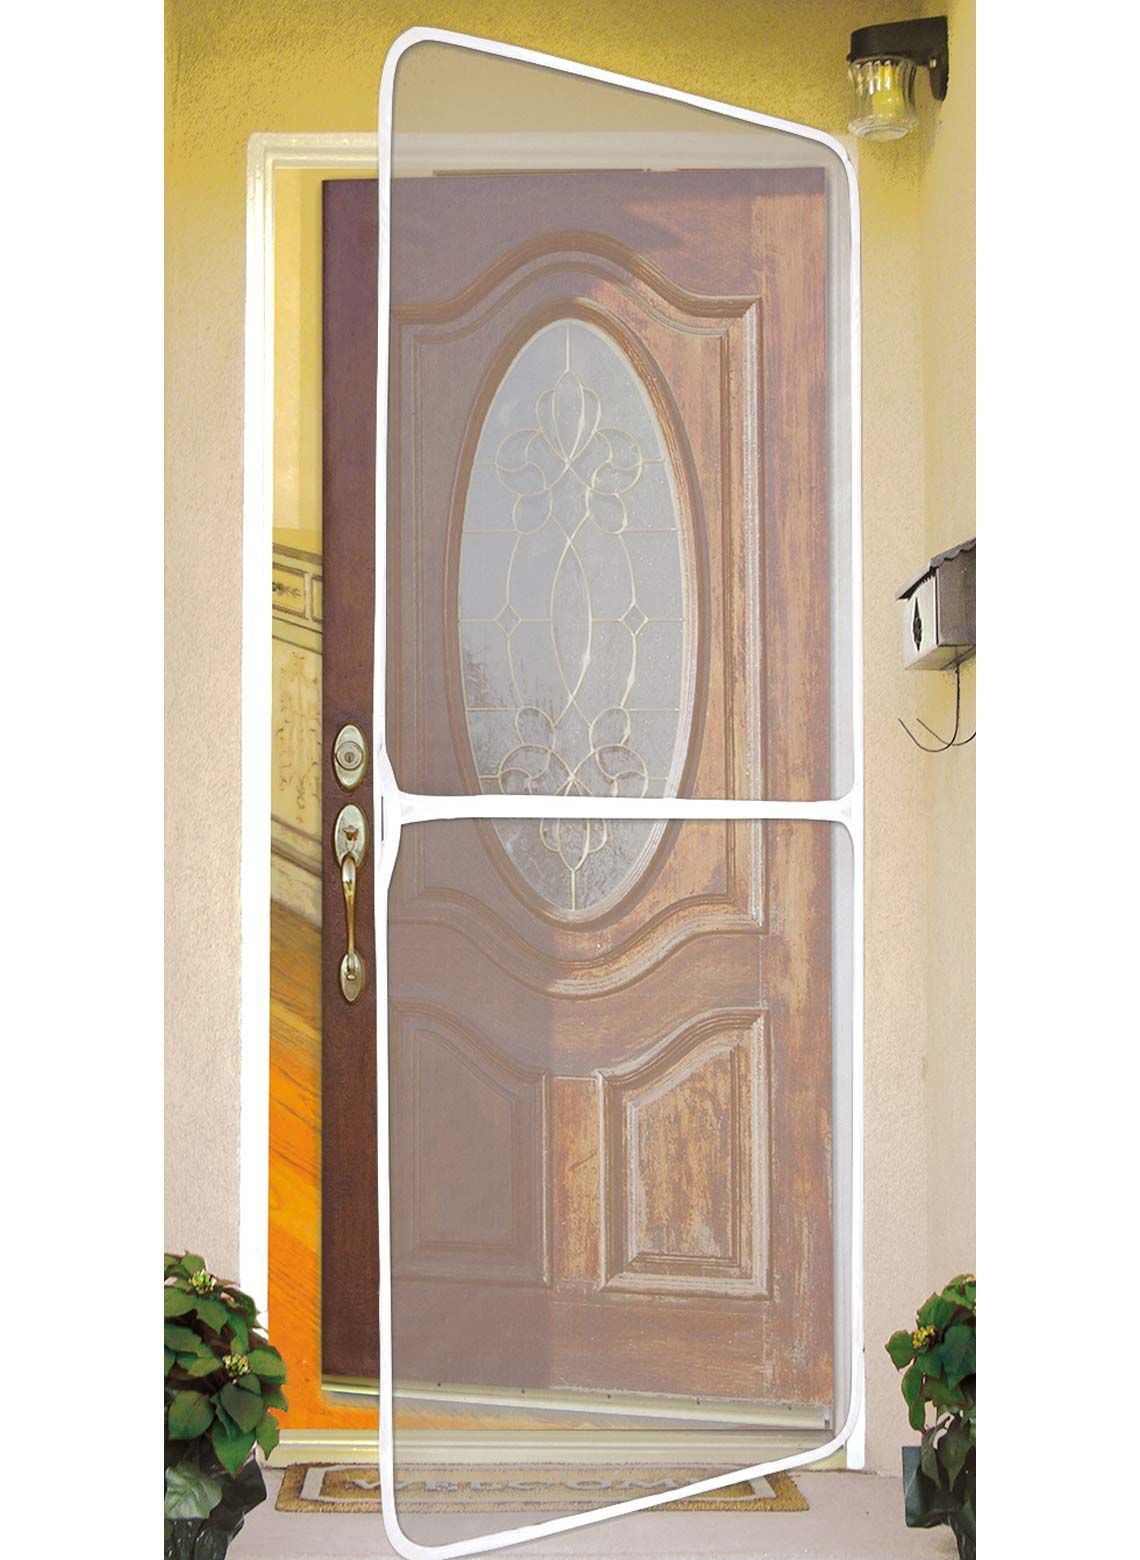 Deluxe Instant Screen Door Easy To Use Self Stick Fasteners No Tools Needed Screen Door Cleans Easily Instant Screen Door Screen Door Portable Screen Door